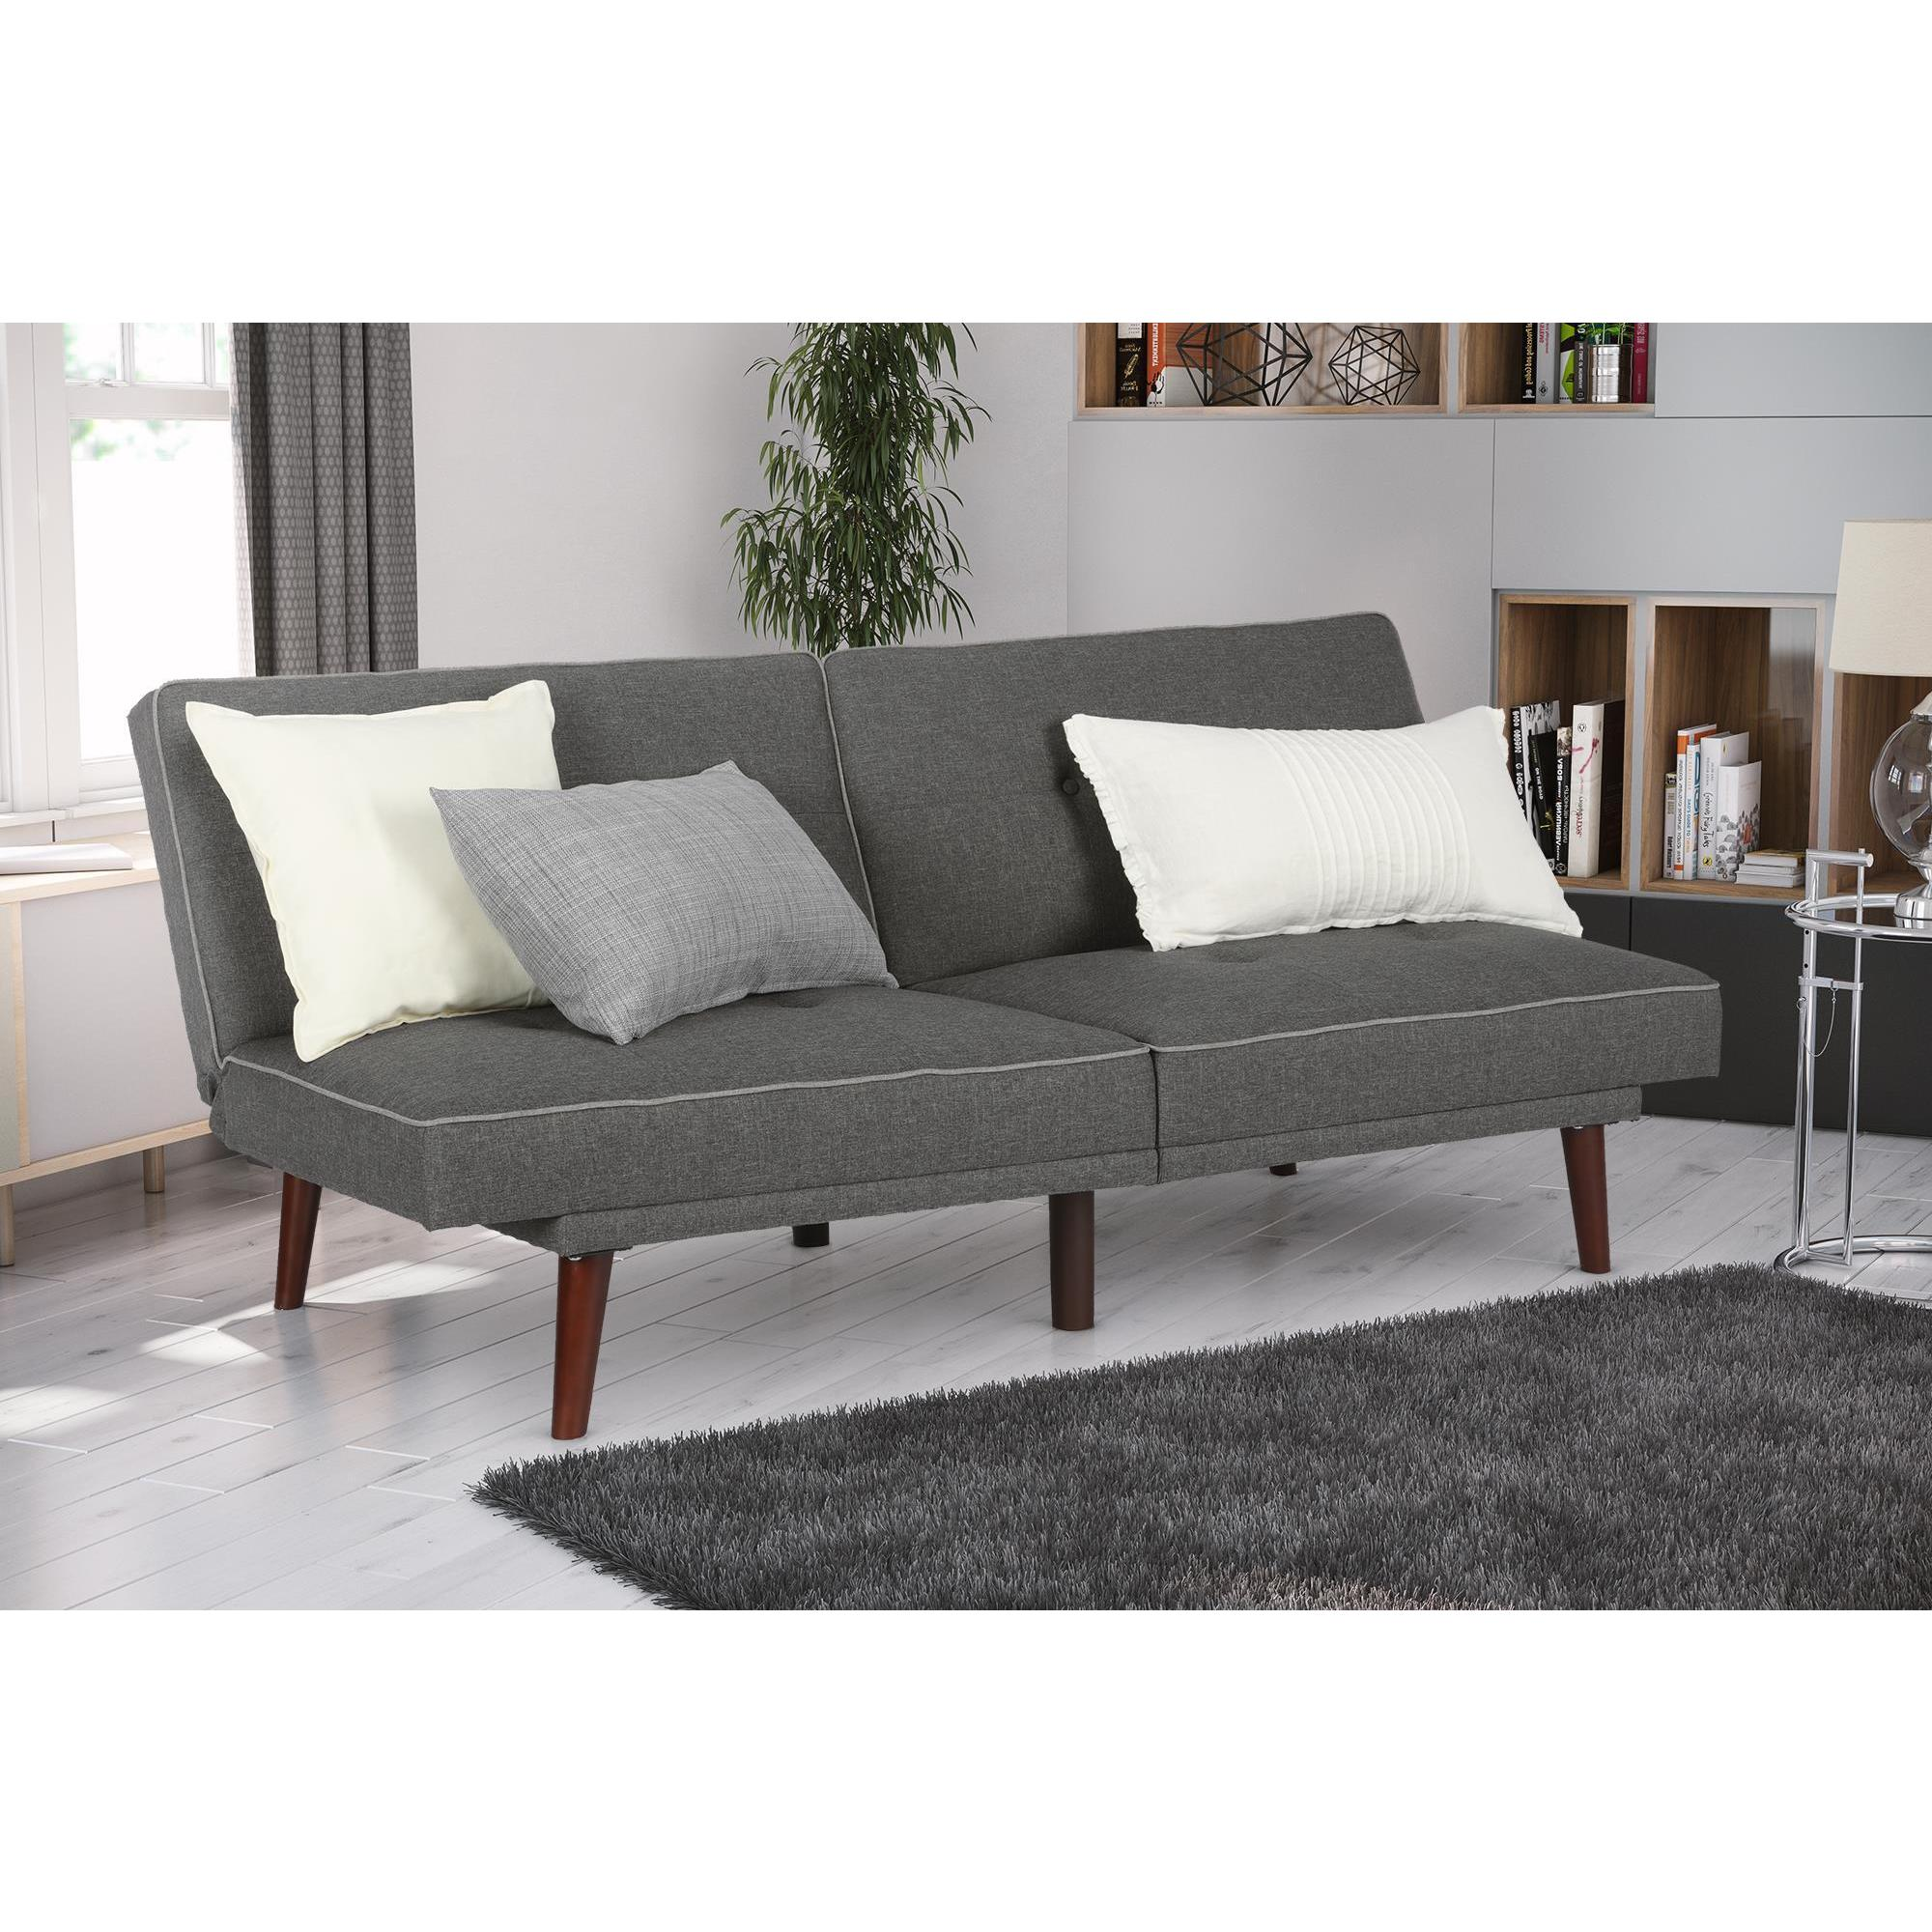 of design table furniture beds futon sale sofa loveseat at gorgeous kitchen new walmart